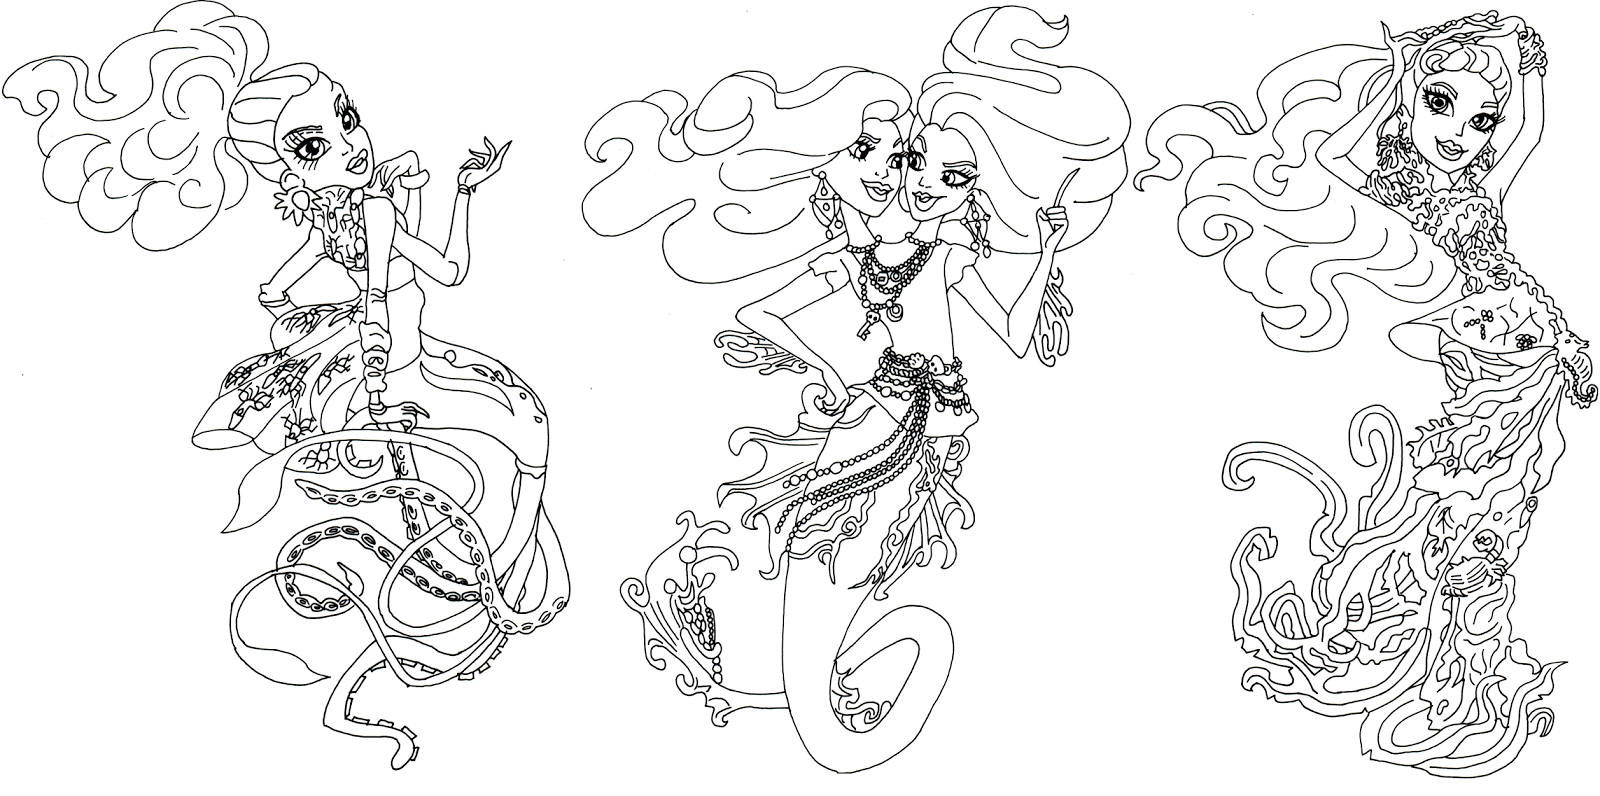 great scarrier reef monster high coloring page - Monster High Coloring Pages